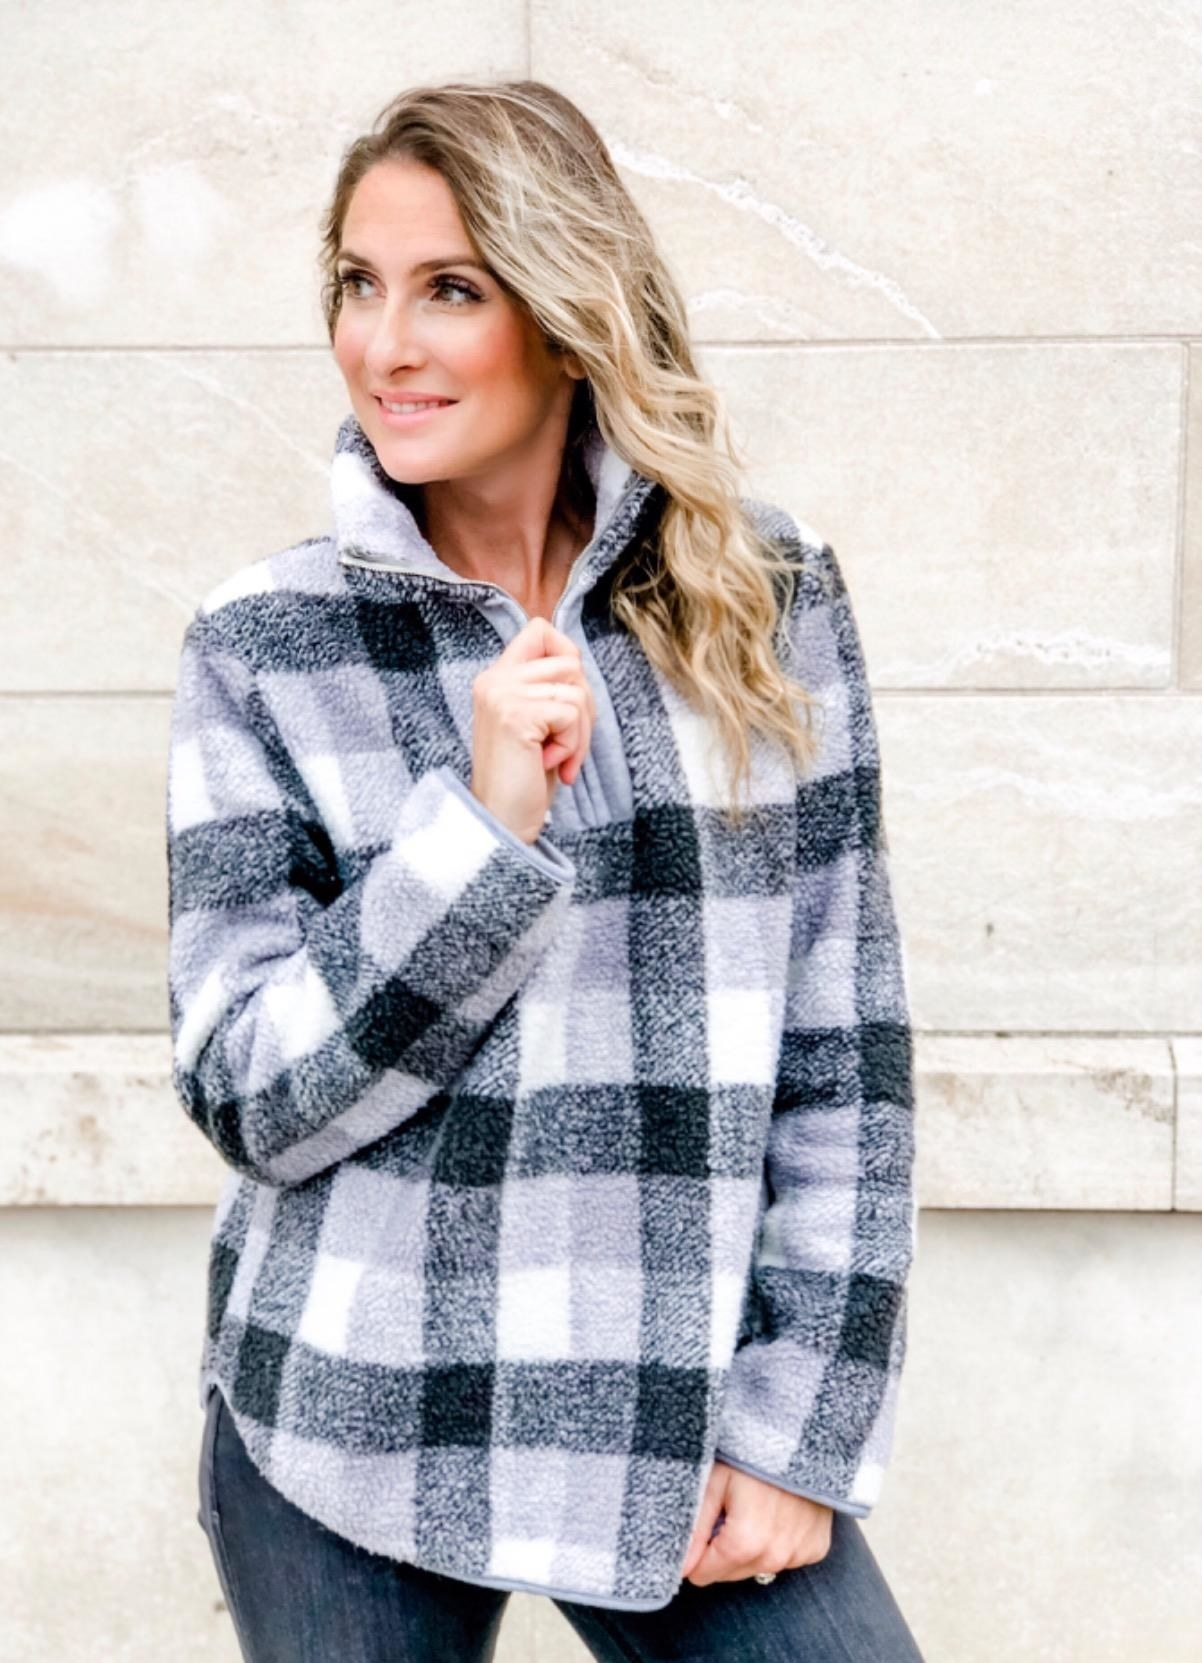 Reviewer wearing the fuzzy quarter zip in black, grey, and white plaid print